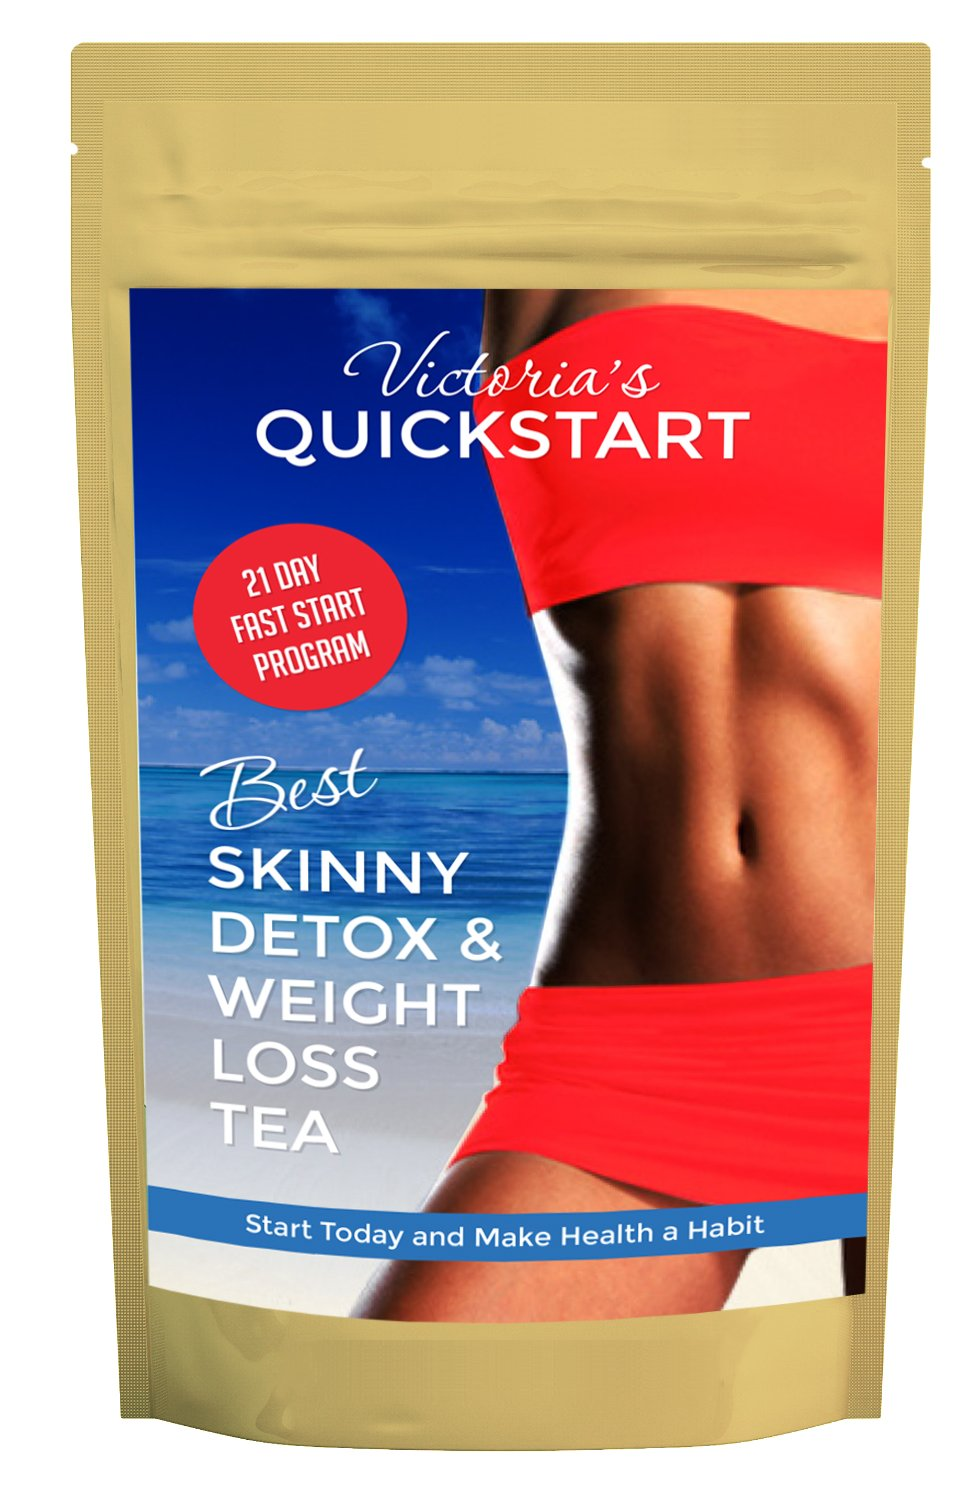 Skinny Detox Tea Waist Slimming, Diet Tea, Belly Fat, Fat Burner, Liver Cleanse, 8 Powerful Ingredients, 14 Days + 7 More Free! + $99 Quick Start Diet E-Book With Recipes Free! by Victoria's Body Shoppe